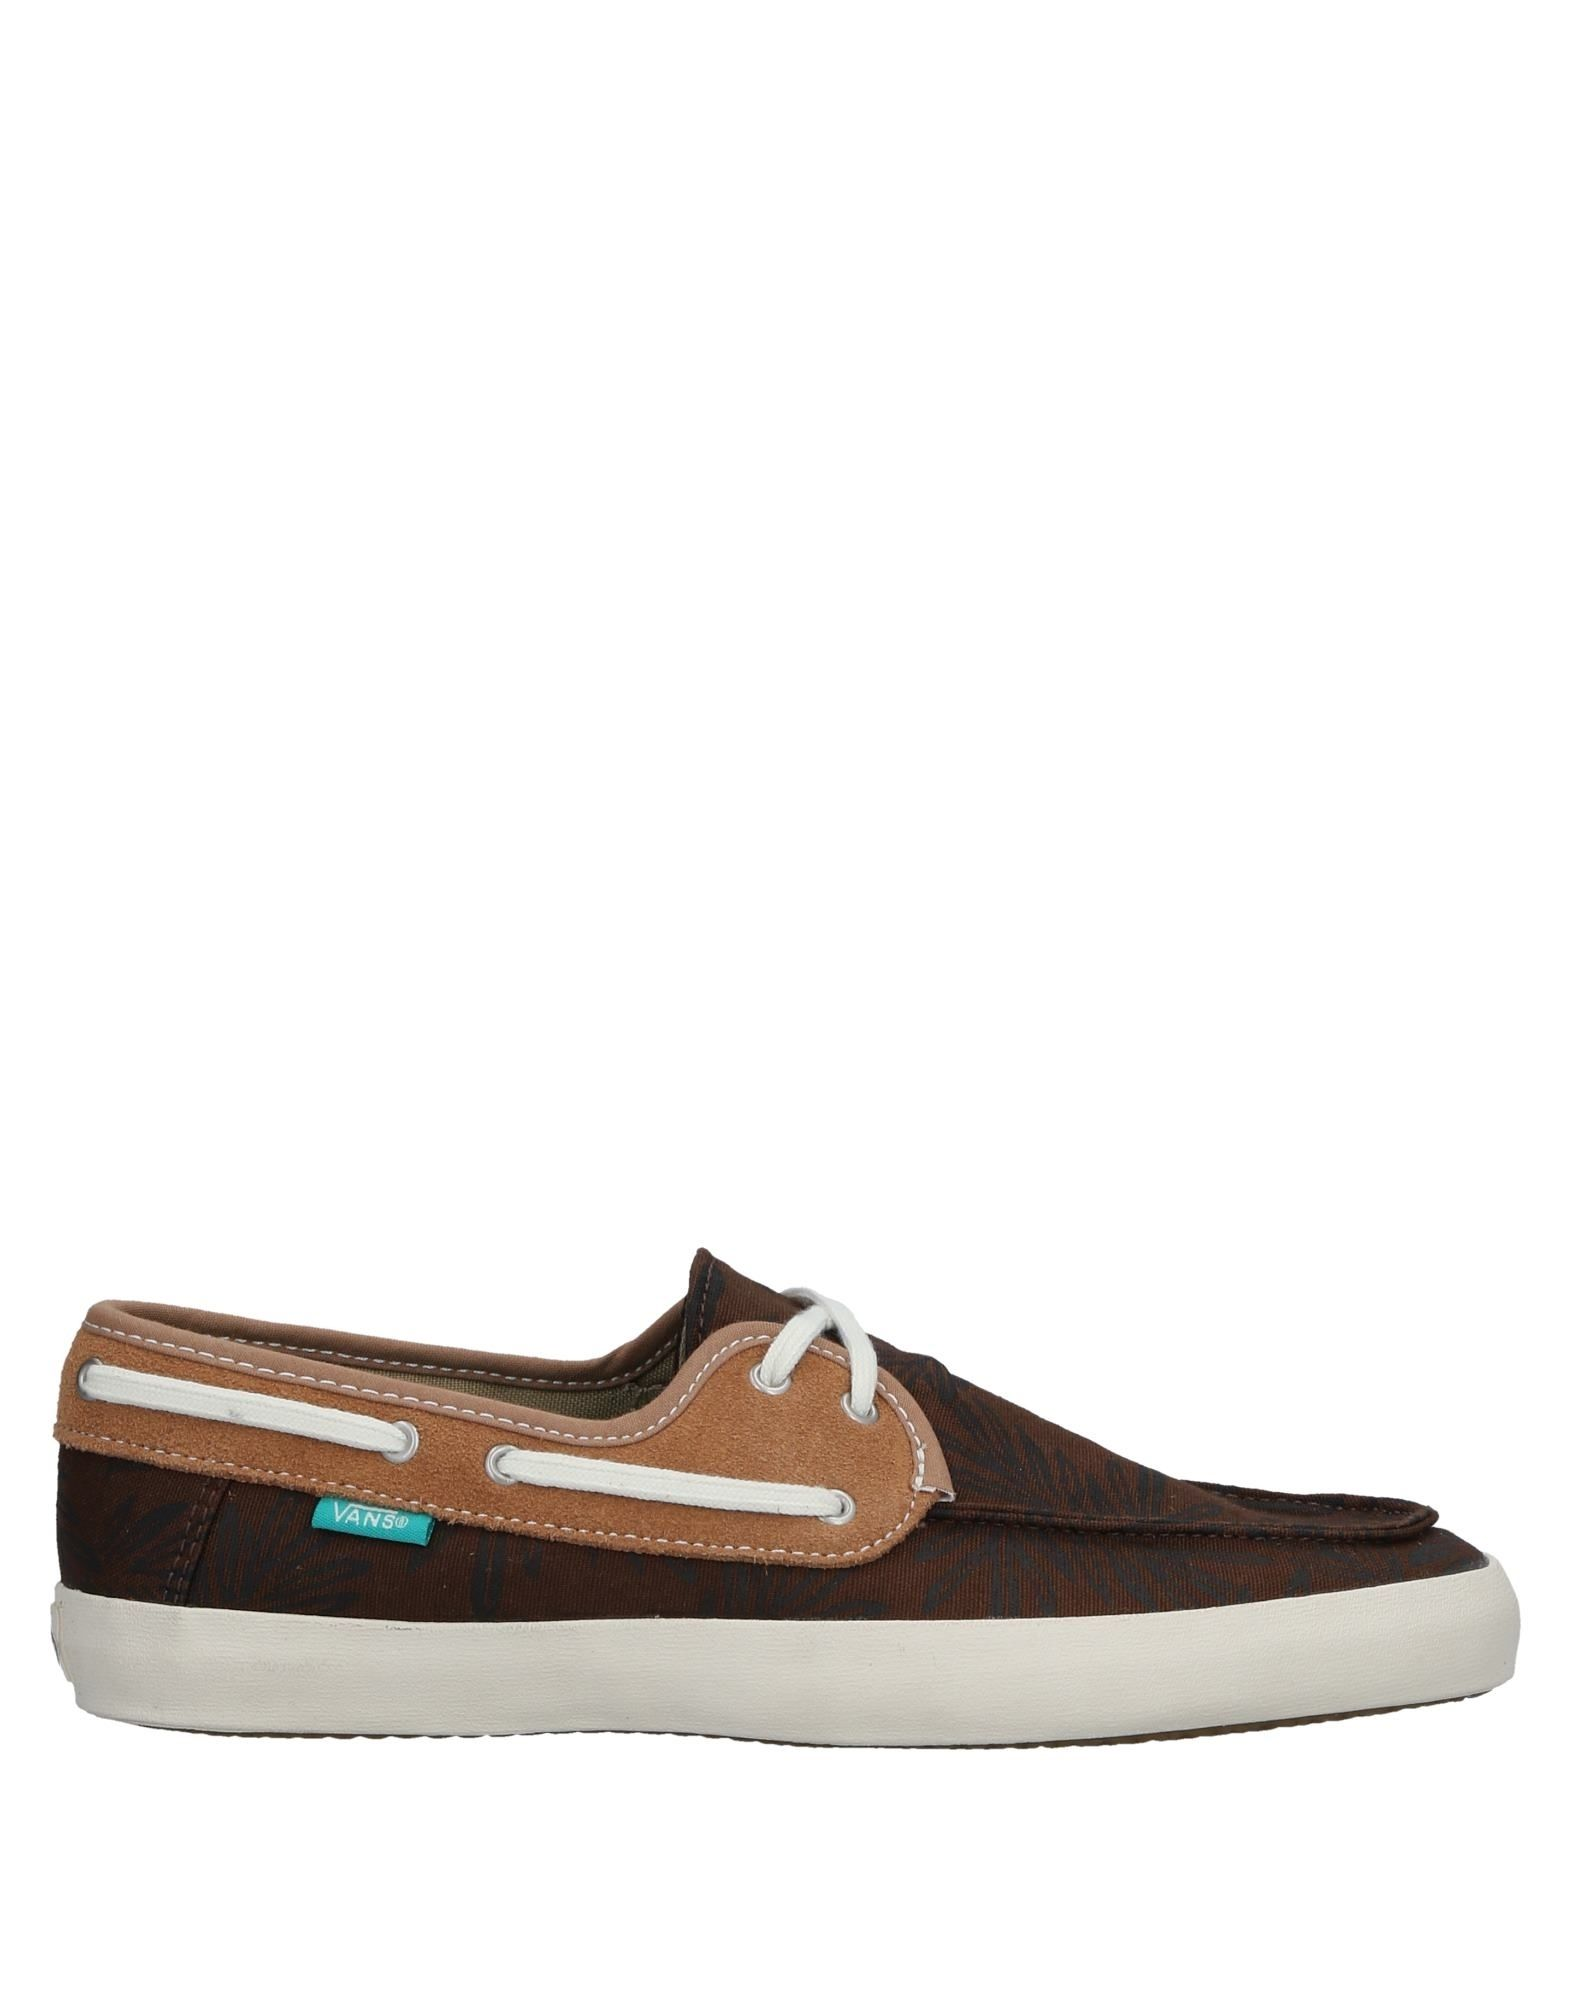 Sneakers The Original Surf Siders By Vans Donna - 11535008GG